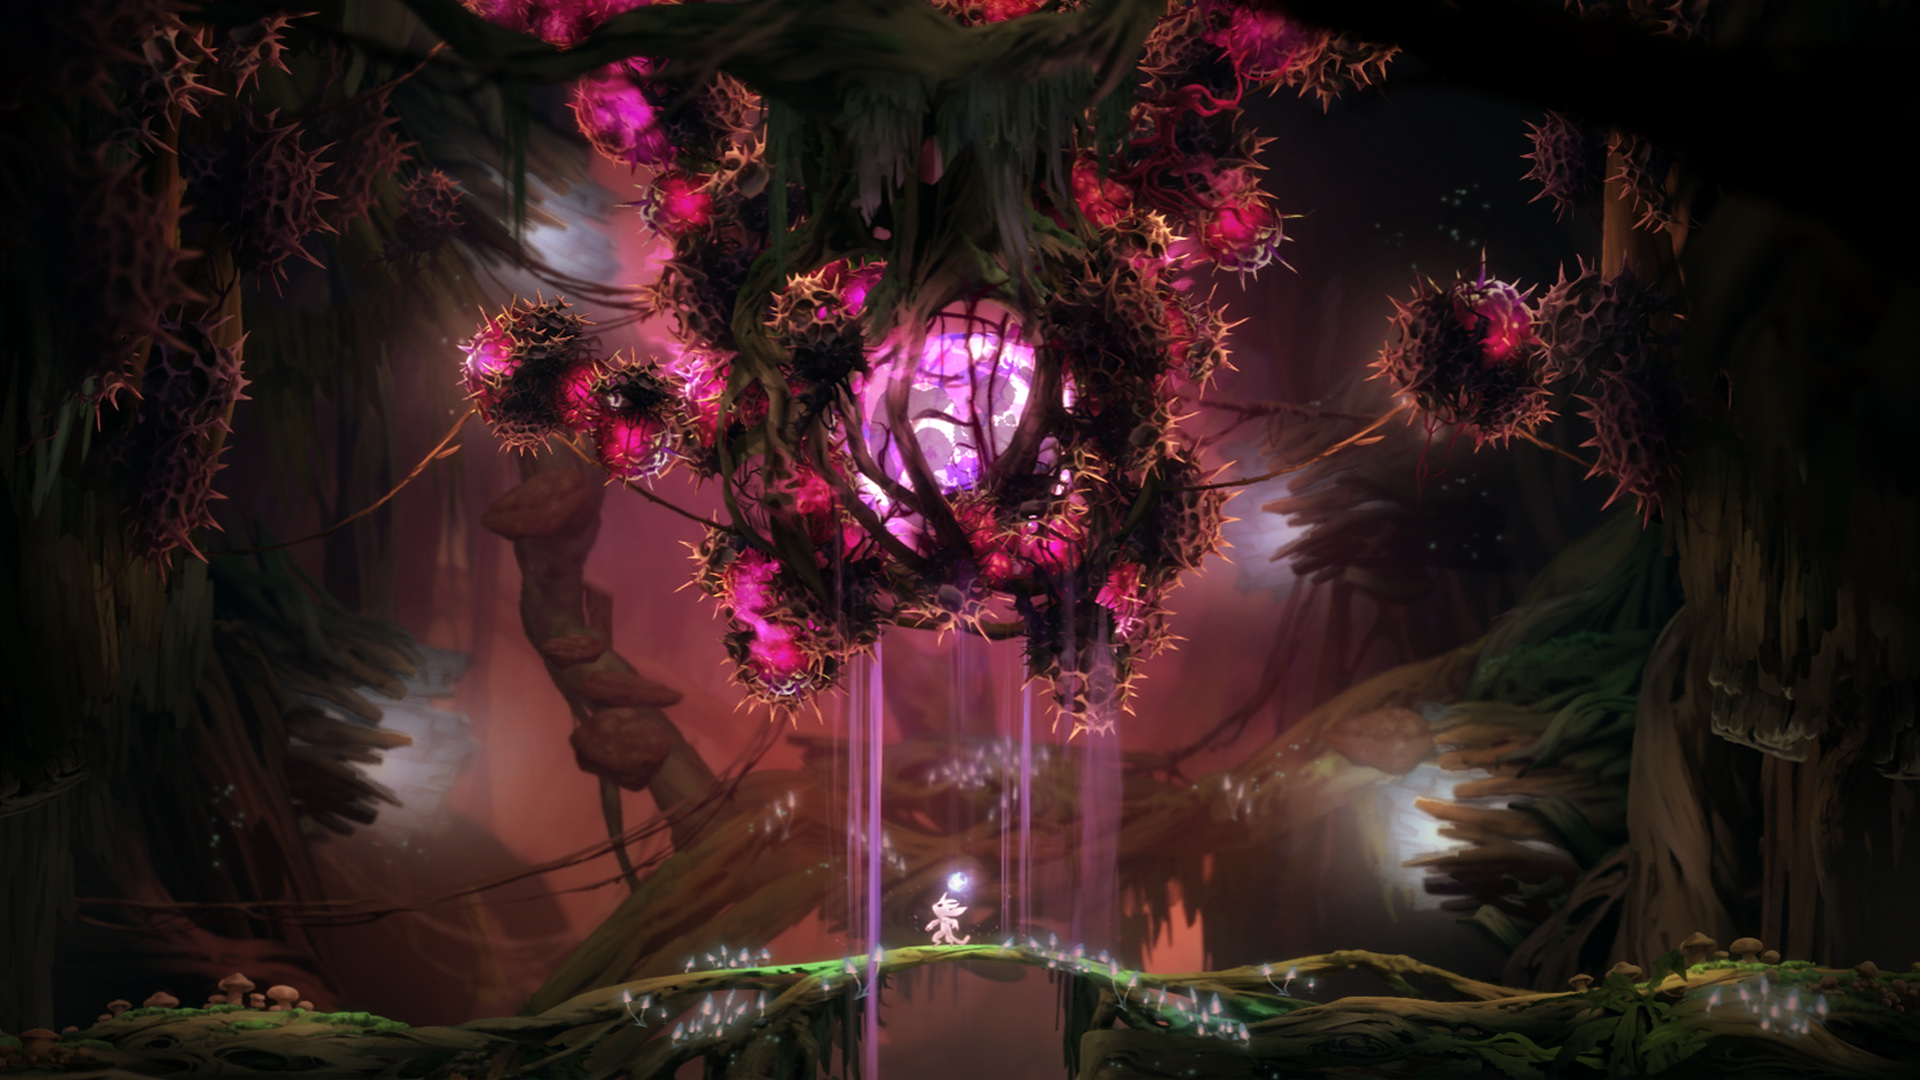 Ori Character Ori And The Blind Forest Hd Wallpaper 2180431